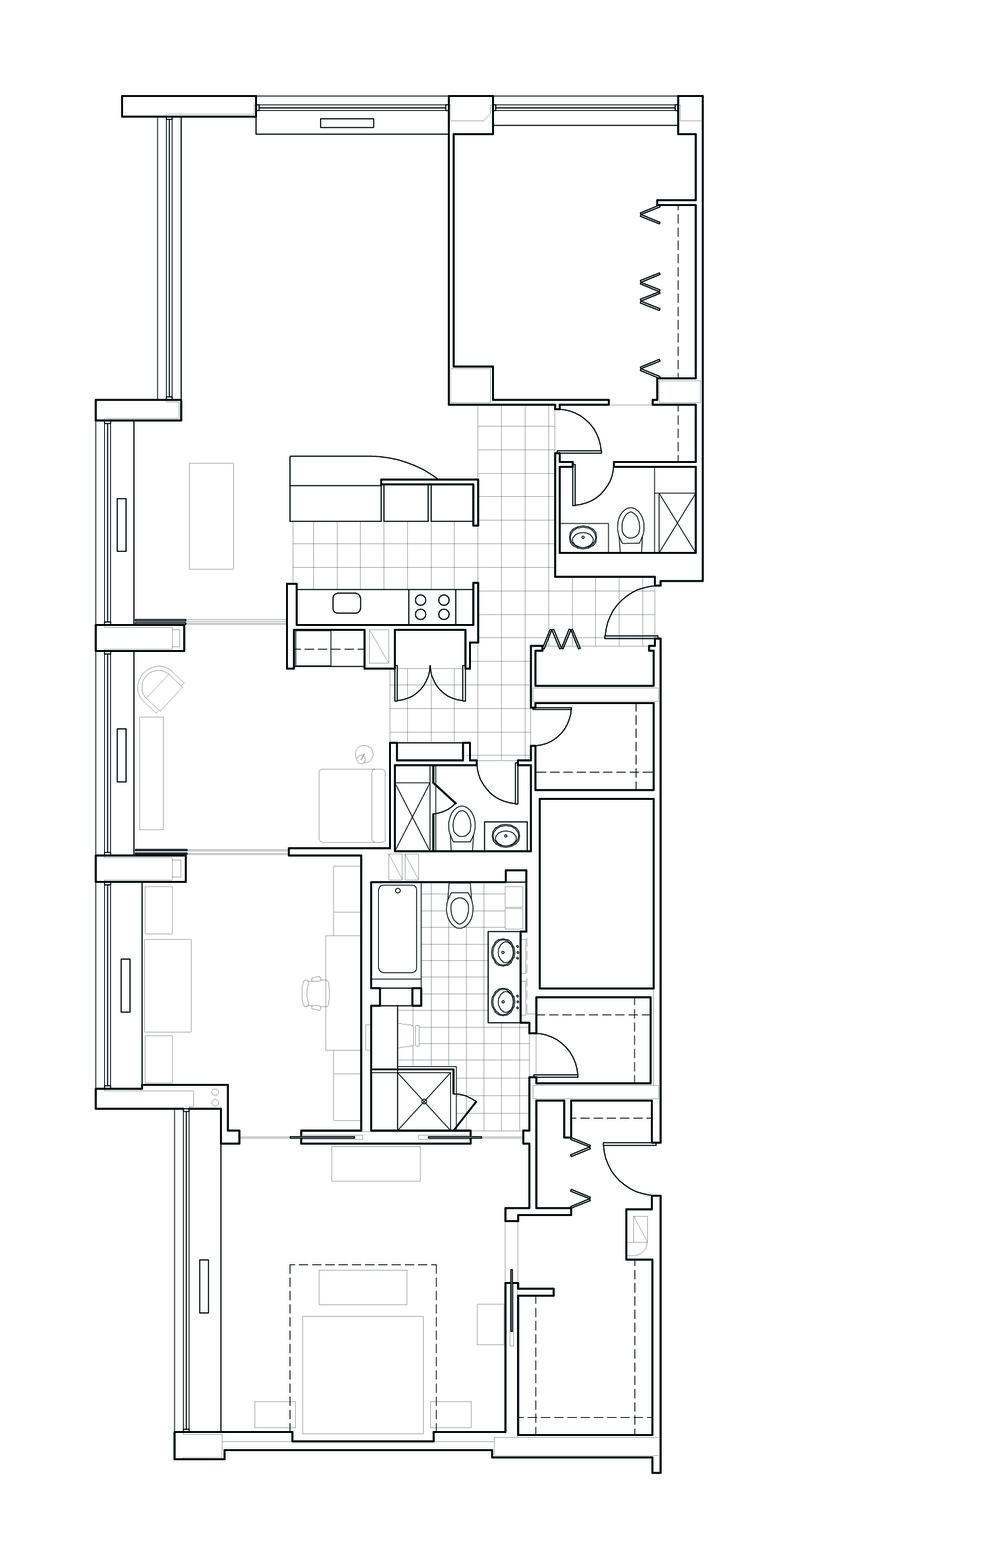 Lake_Shore_Drive_Residence_Floor_Plan.jpg